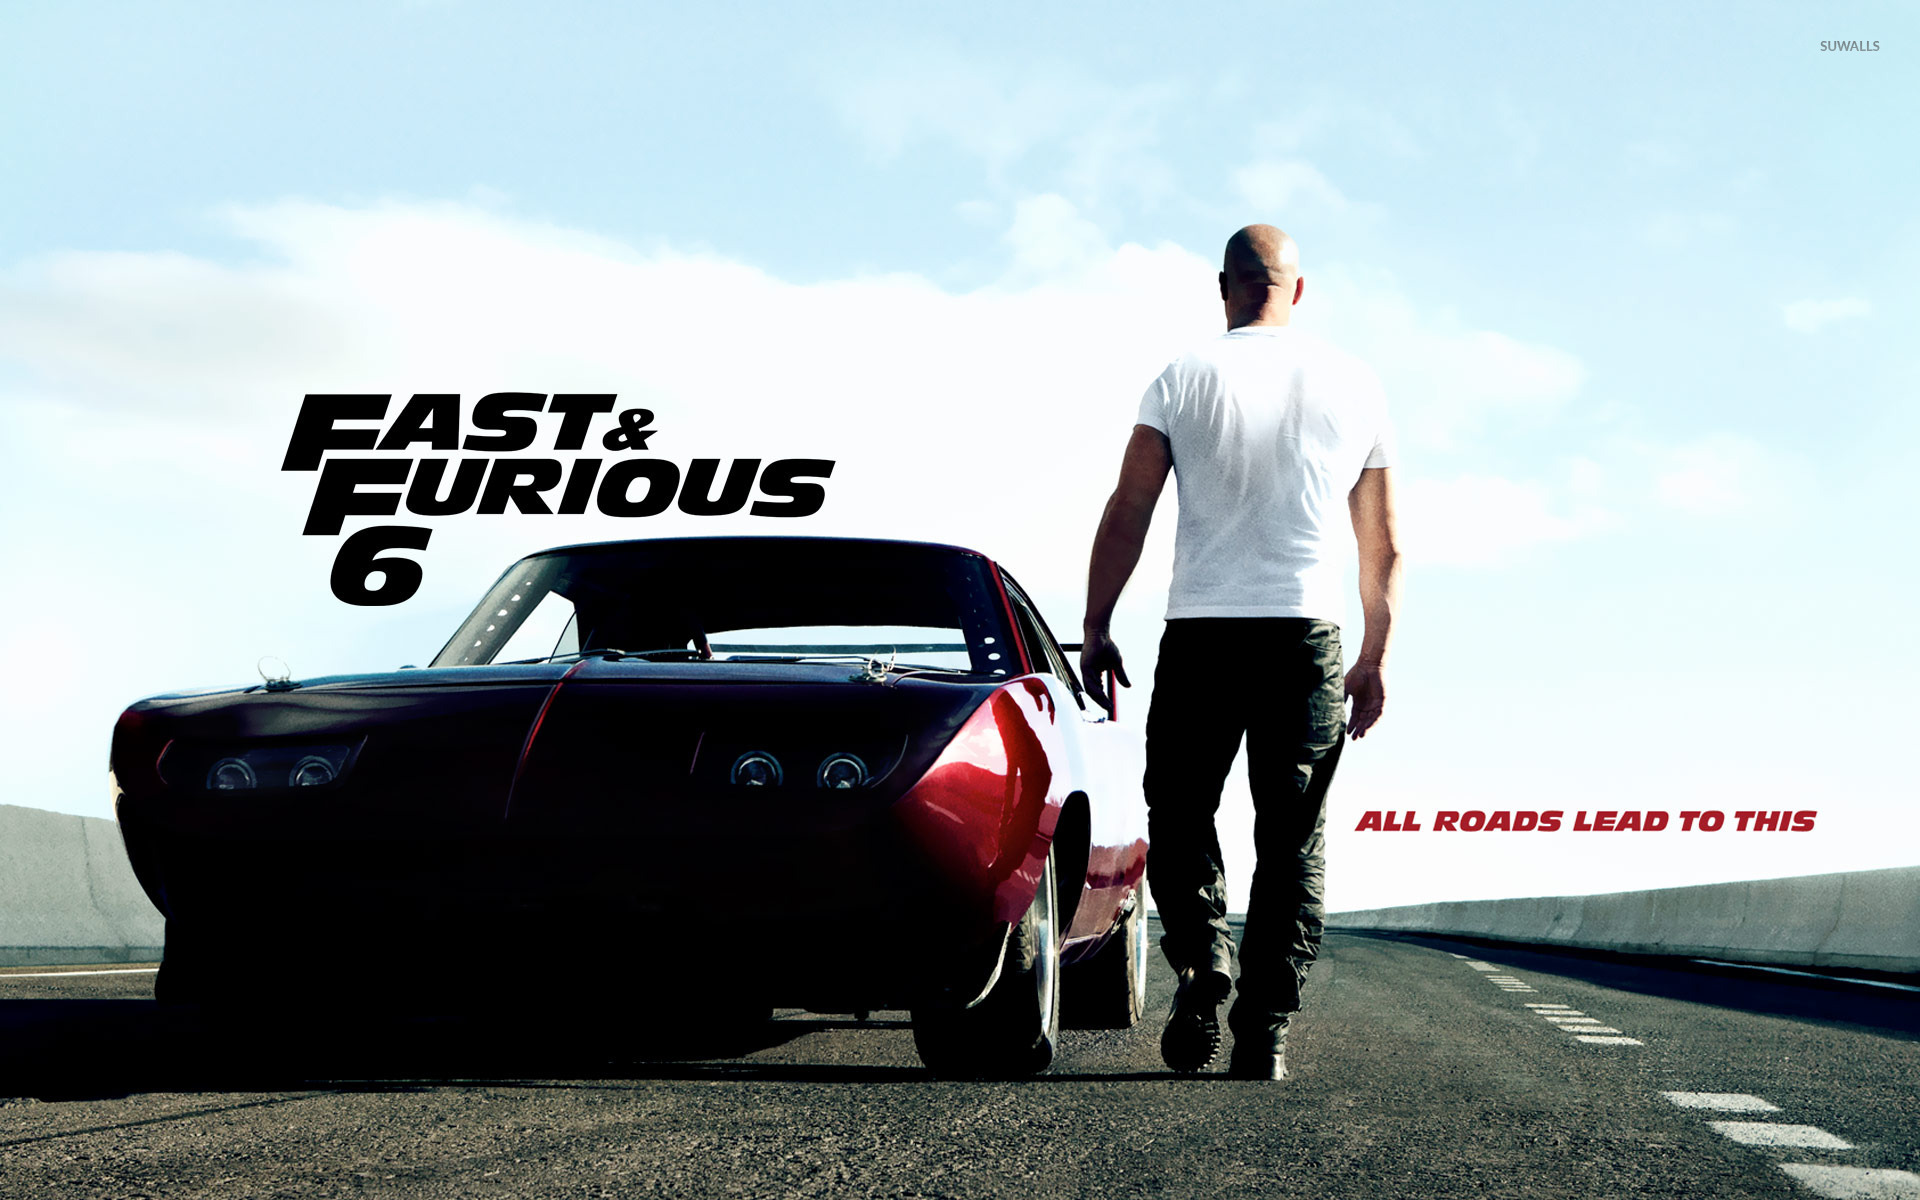 Dominic Toretto - Fast & Furious 6 wallpaper - Movie ...